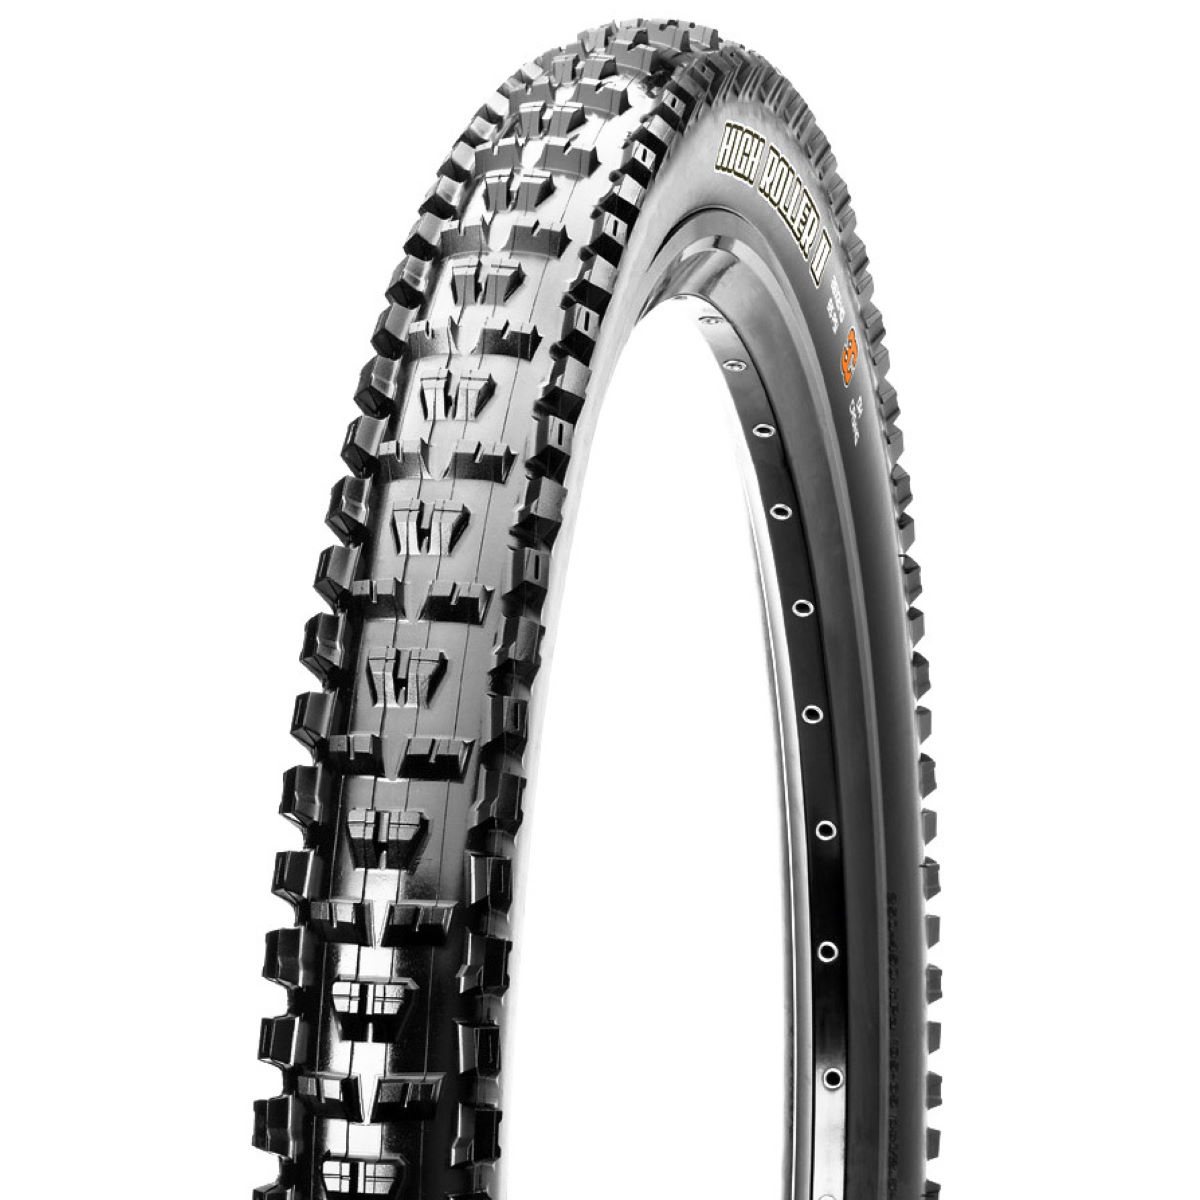 Maxxis Maxxis High Roller II Folding MTB Tyre   Tyres